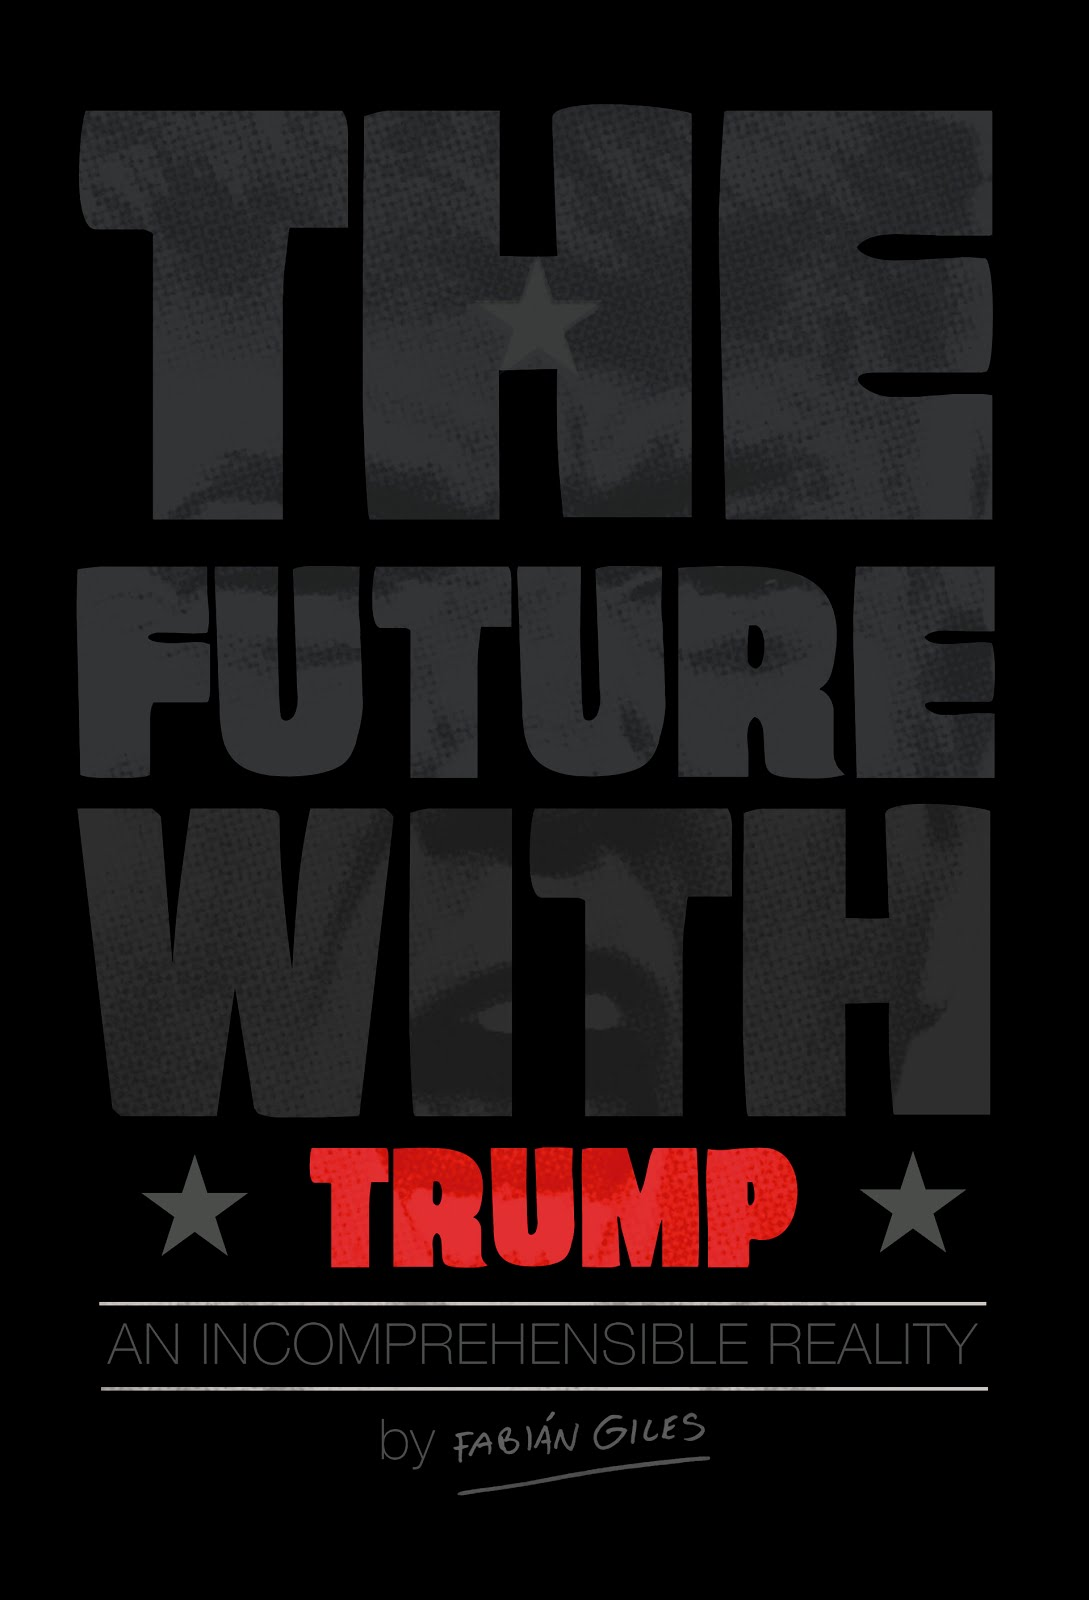 THE #FutureWithTrump